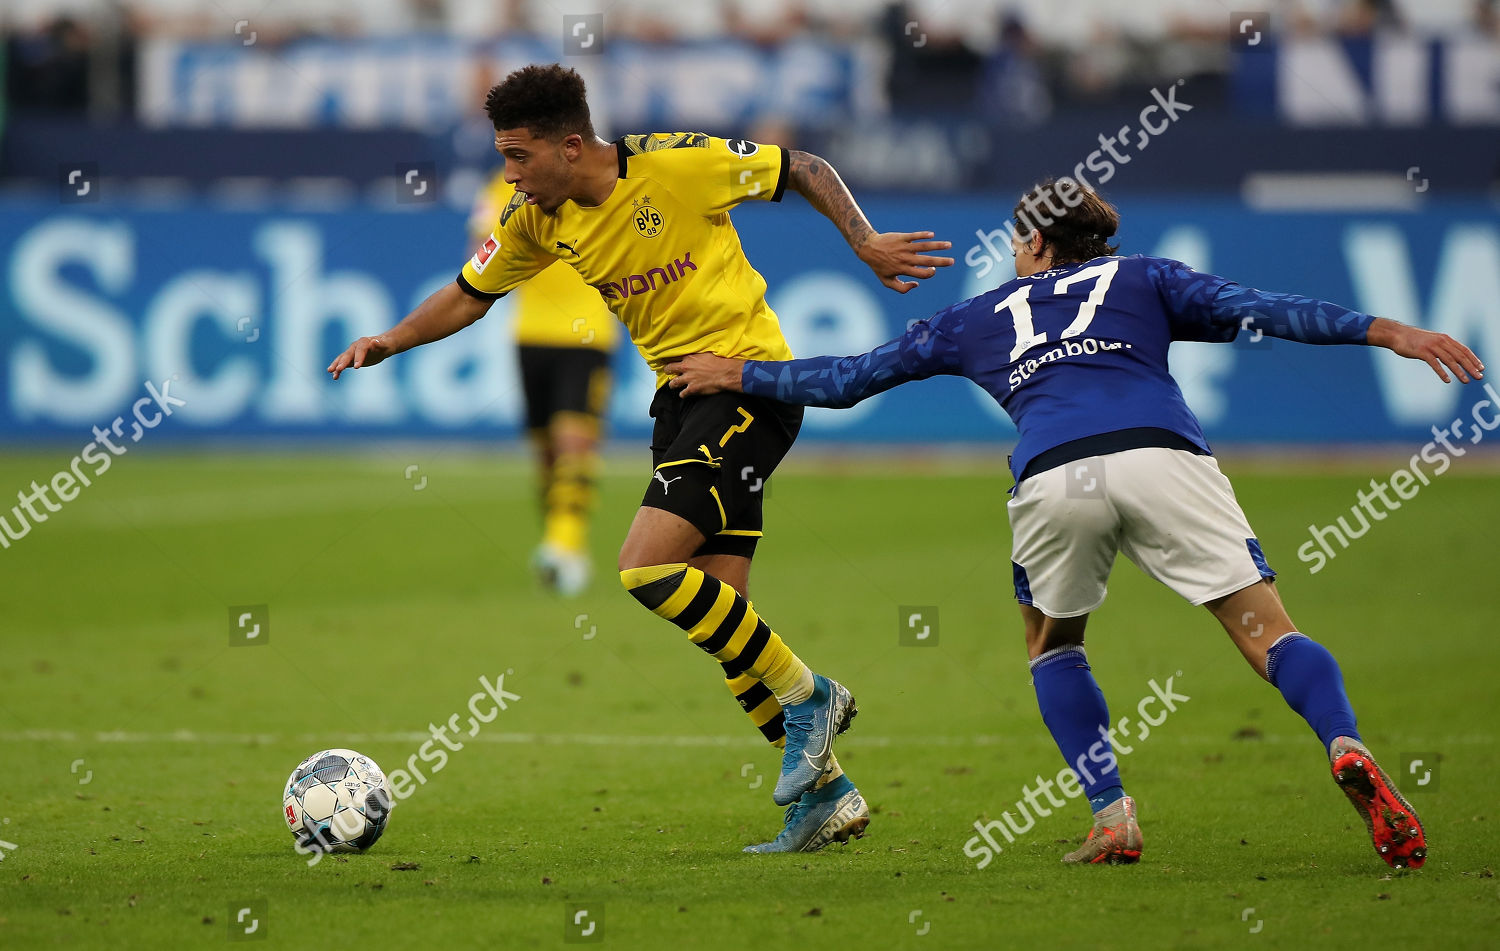 Dortmunds Jadon Sancho Action Schalkes Benjamin Stambouli Editorial Stock Photo Stock Image Shutterstock